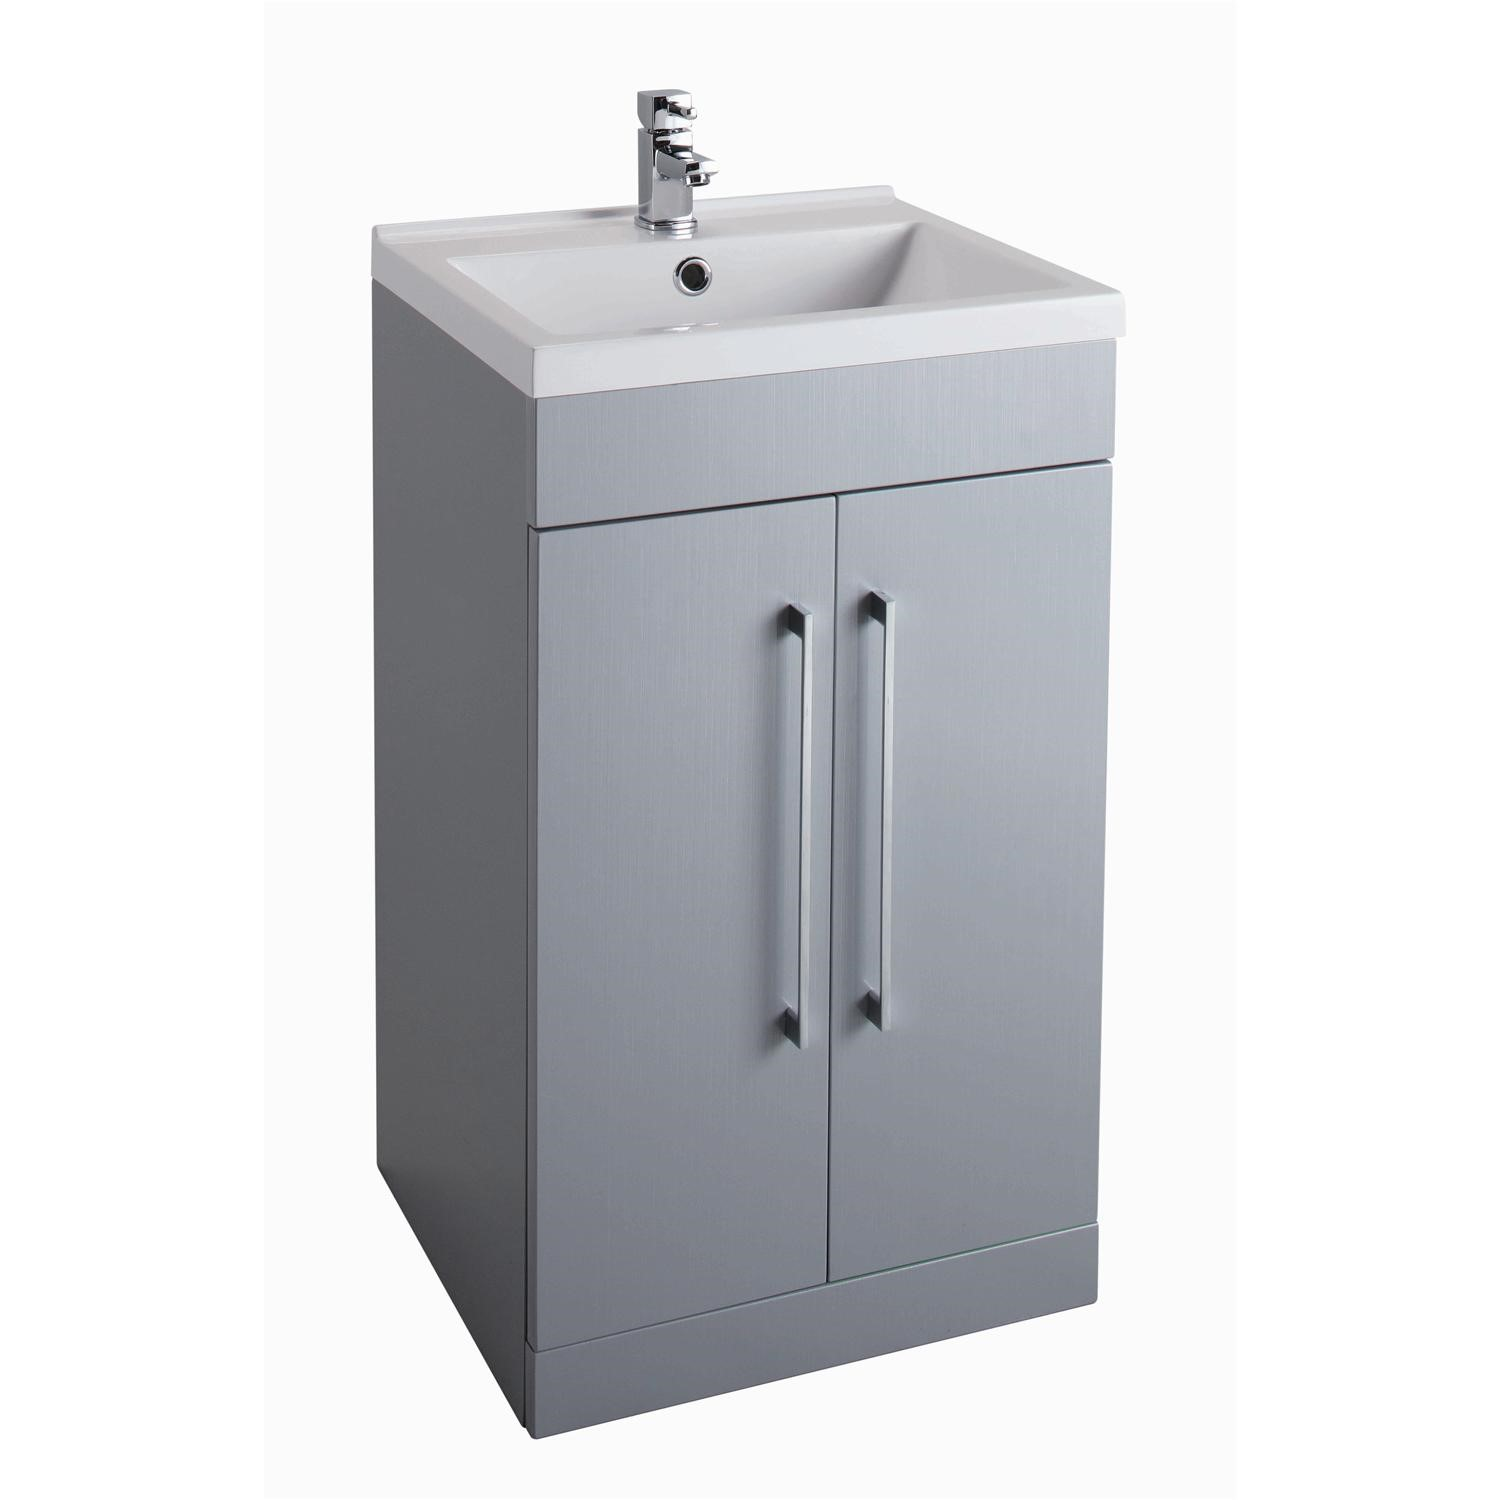 finest selection d799f 0c21d Grey Free Standing Bathroom Vanity Unit - Without Basin - W500 x H820mm